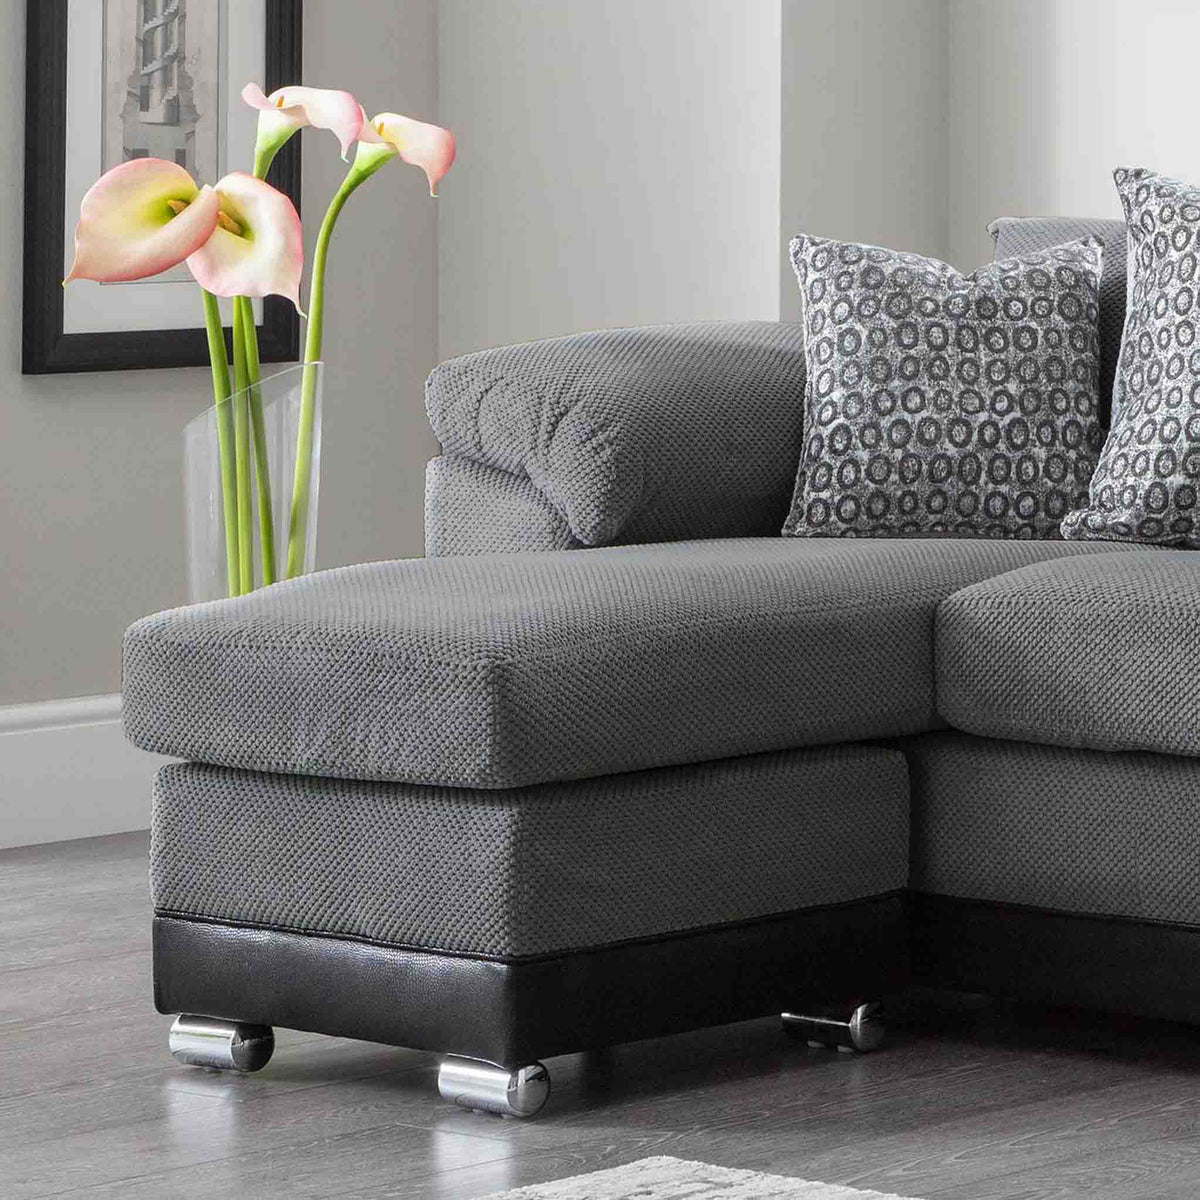 close up of the chaise cushion and foot stool on the Ameba Charcoal Fabric & Faux Leather Corner Chaise Sofa